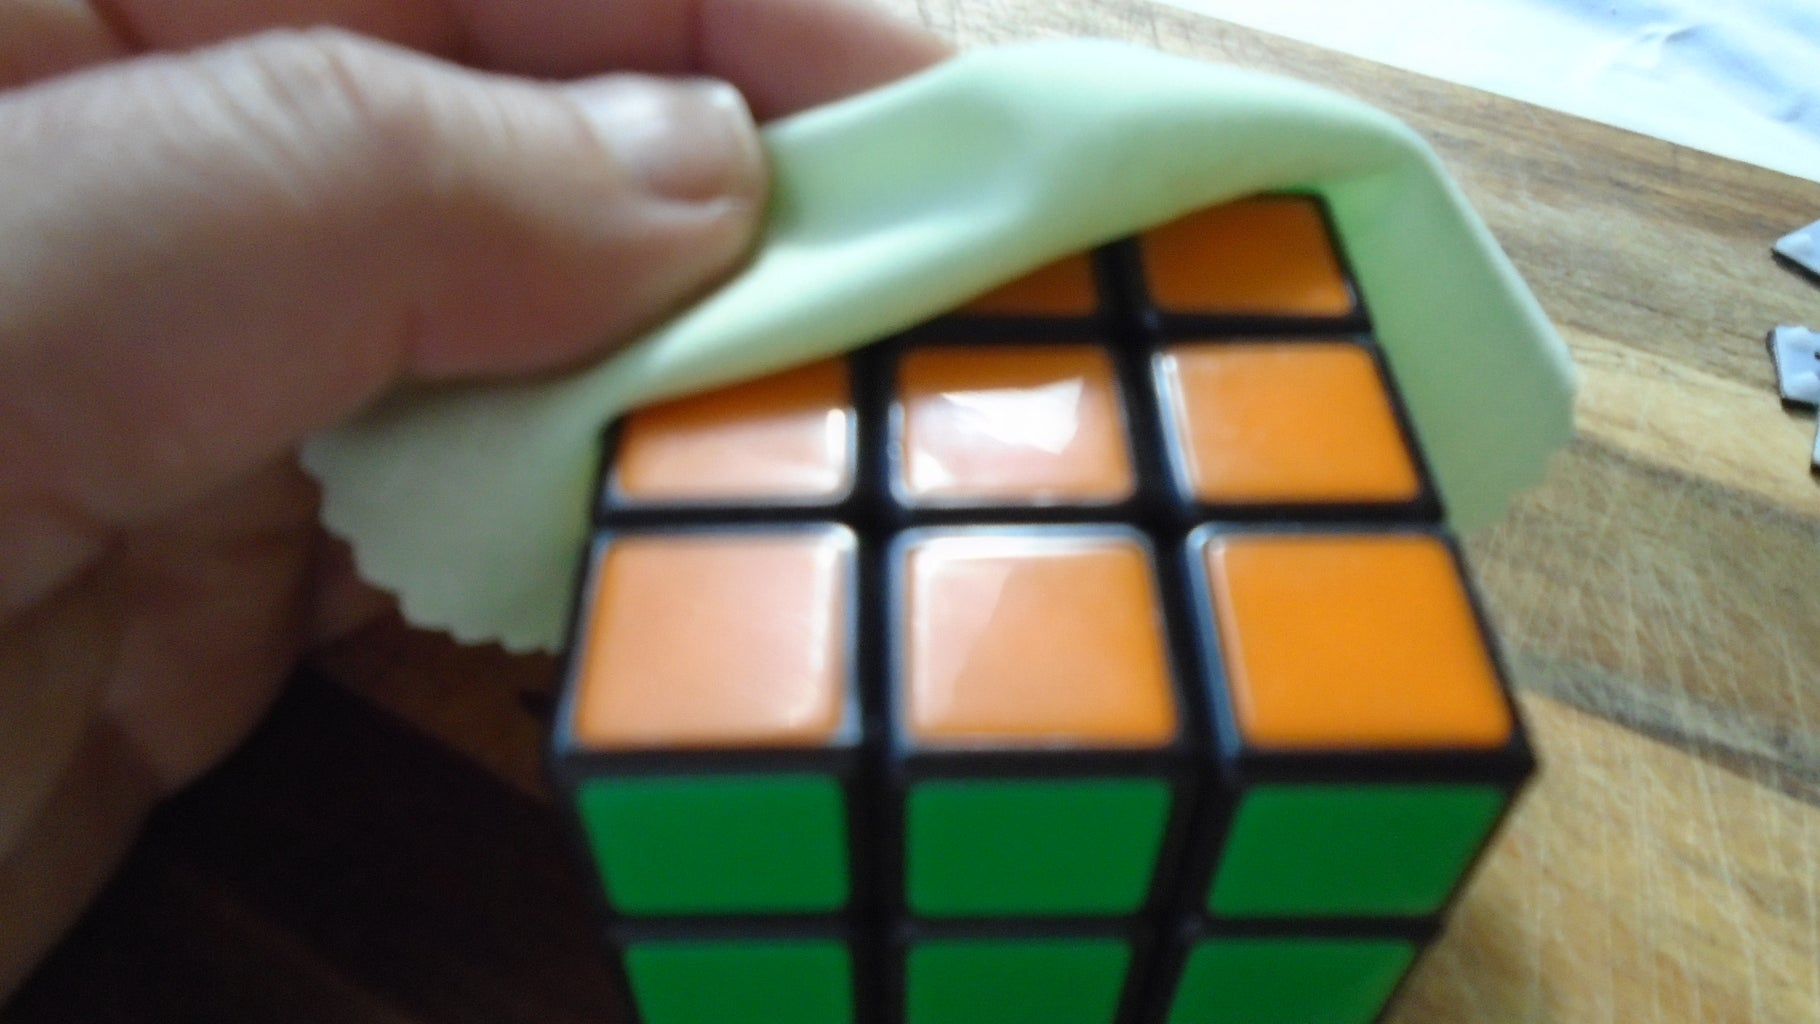 Stick the Tiles to Your Cube